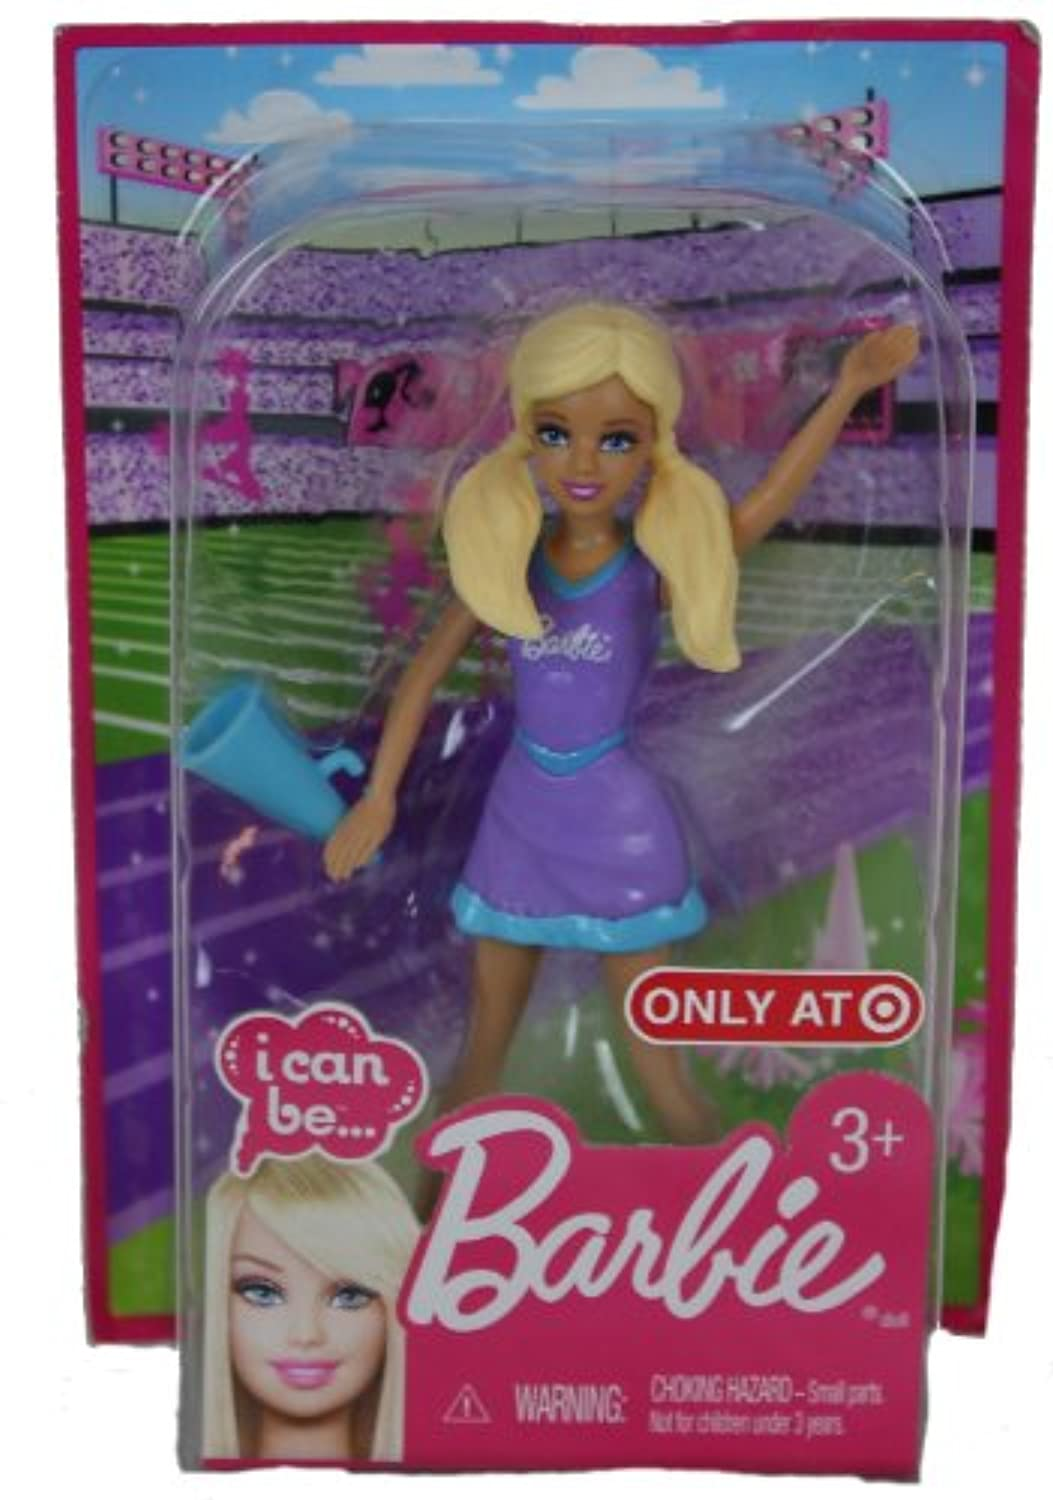 Barbie I Can Be A Cheerleader Mini Plastic Blonde Doll by Mattel [並行輸入品]